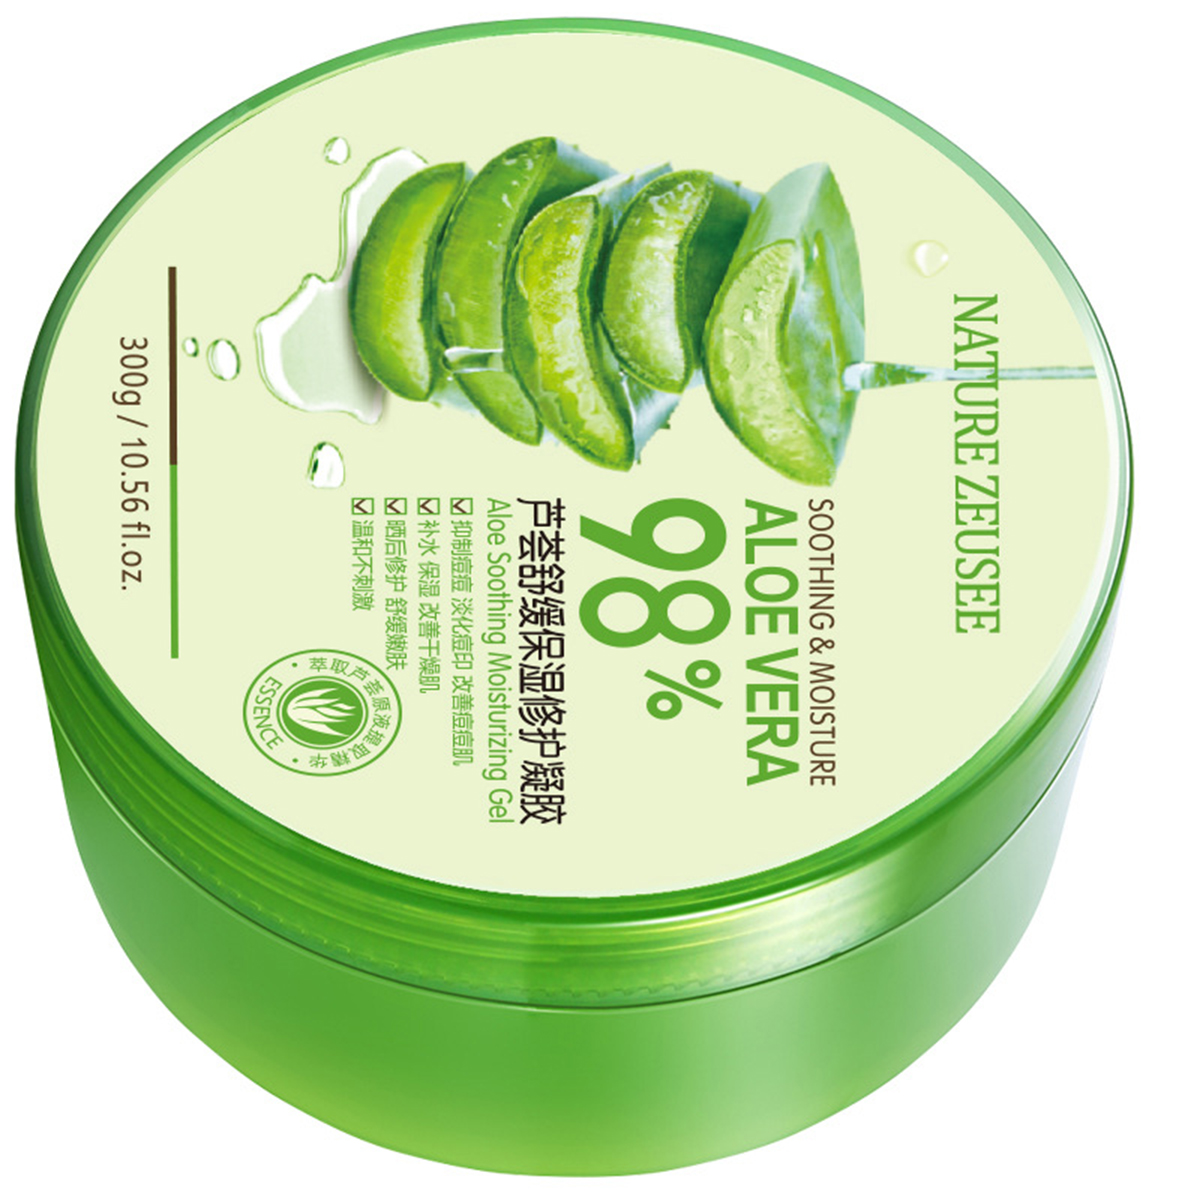 300g​-nature-aloe-vera-gel-organic-oil-control-face-skin-care-hydrating-repair-smoothing-moisturizing-gel-body-sunburn-relief